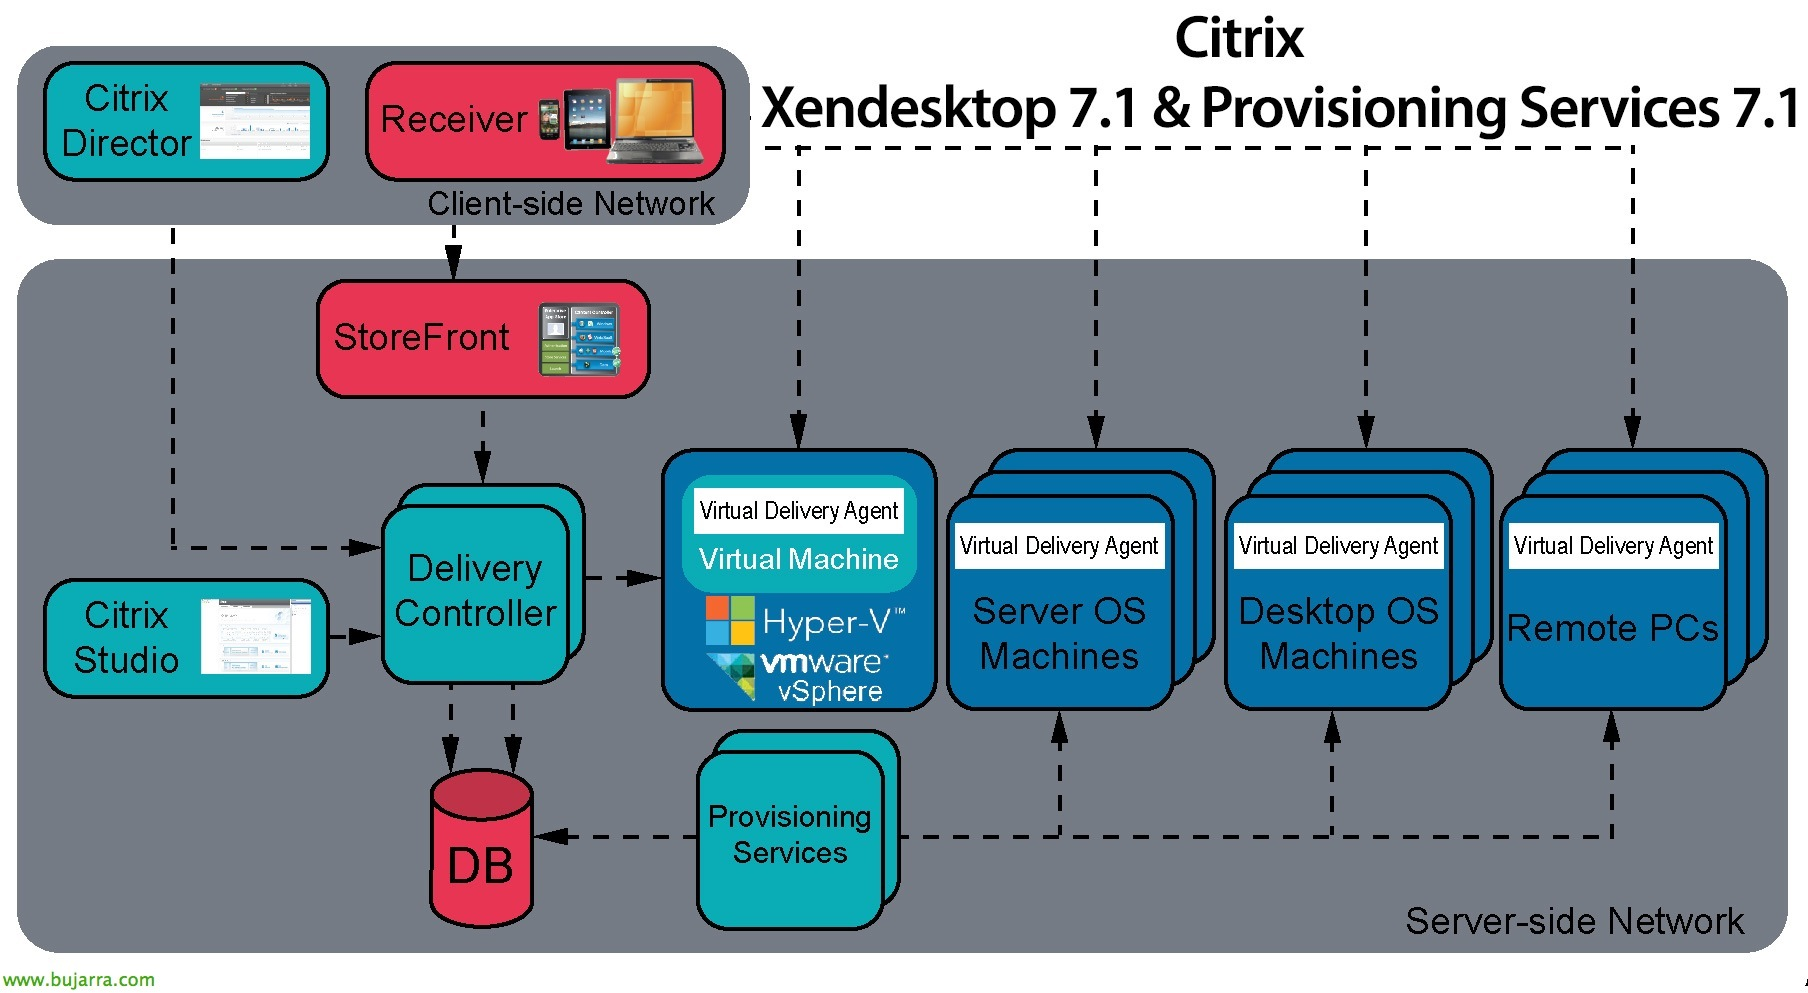 Citrix Provisioning Services 7 1 con Citrix XenDesktop 7 1